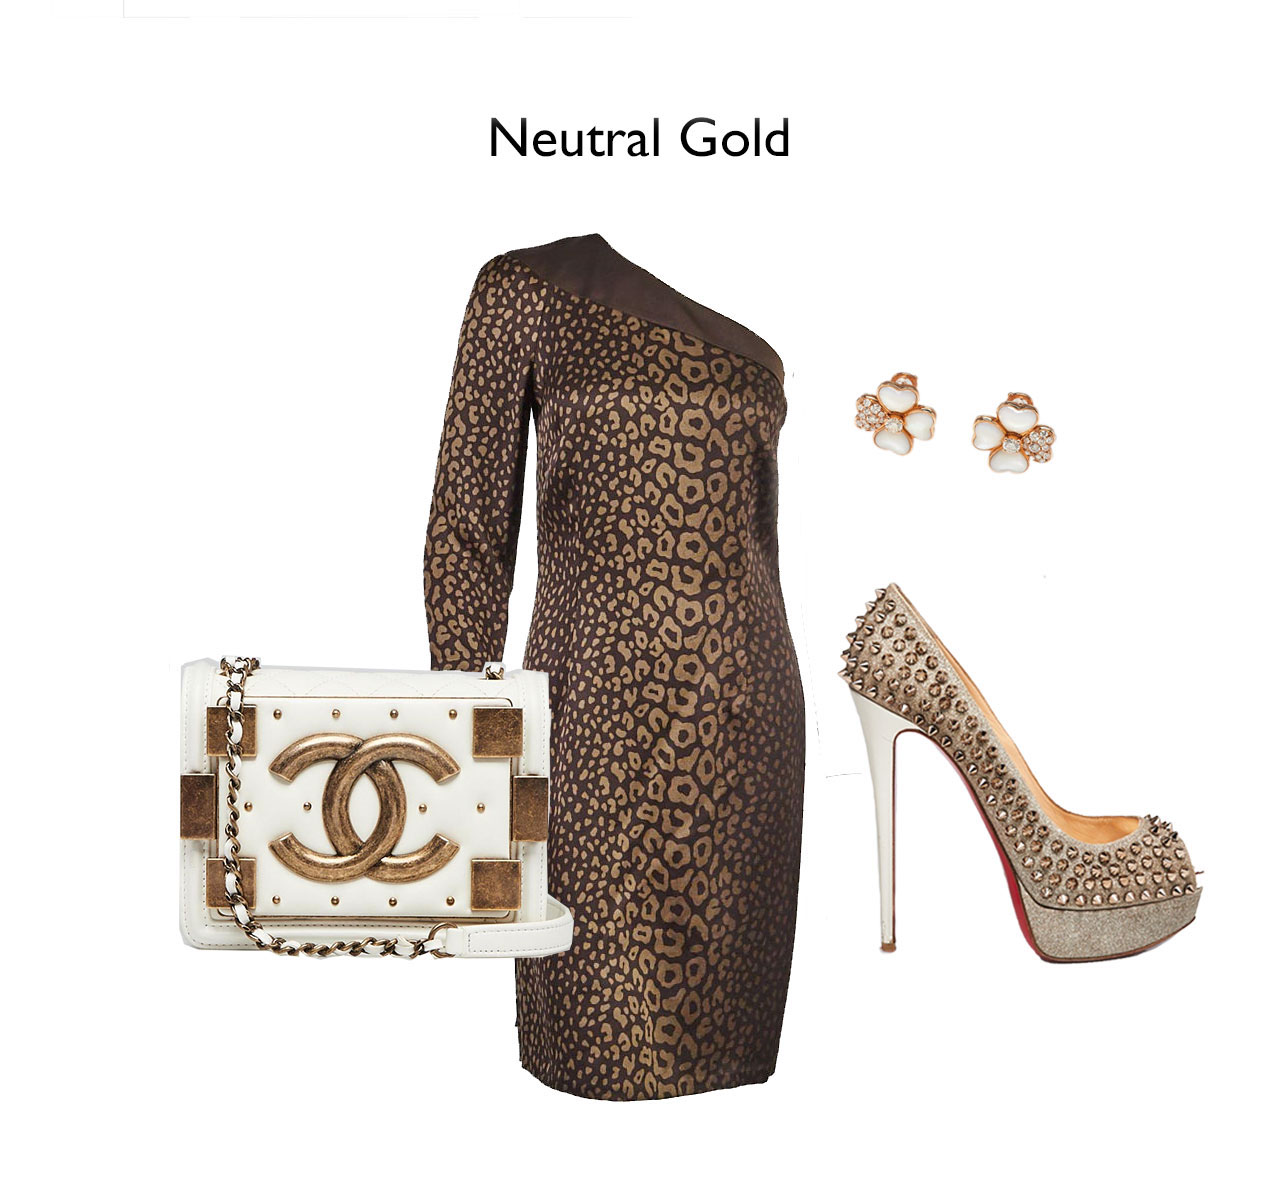 Gold Holiday Party Outfit Idea For Christmas | Yoogi's Closet Authenticated Pre-Owned Luxury yoogsicloset.com